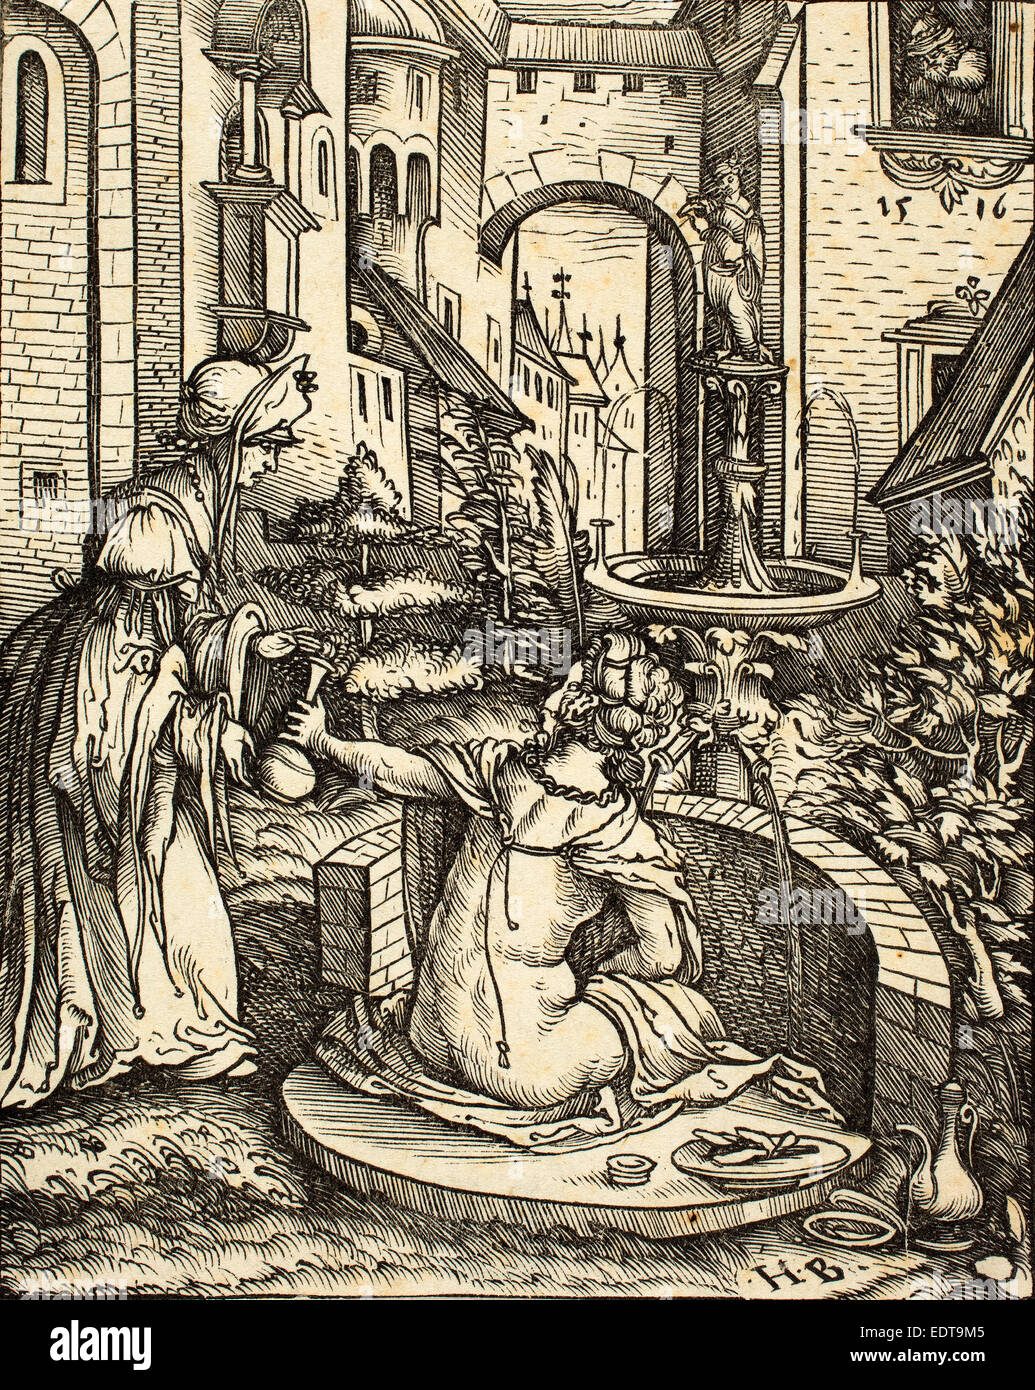 Hans Burgkmair I (German, 1473 - 1531), Bathsheba at Her Bath, 1519, woodcut